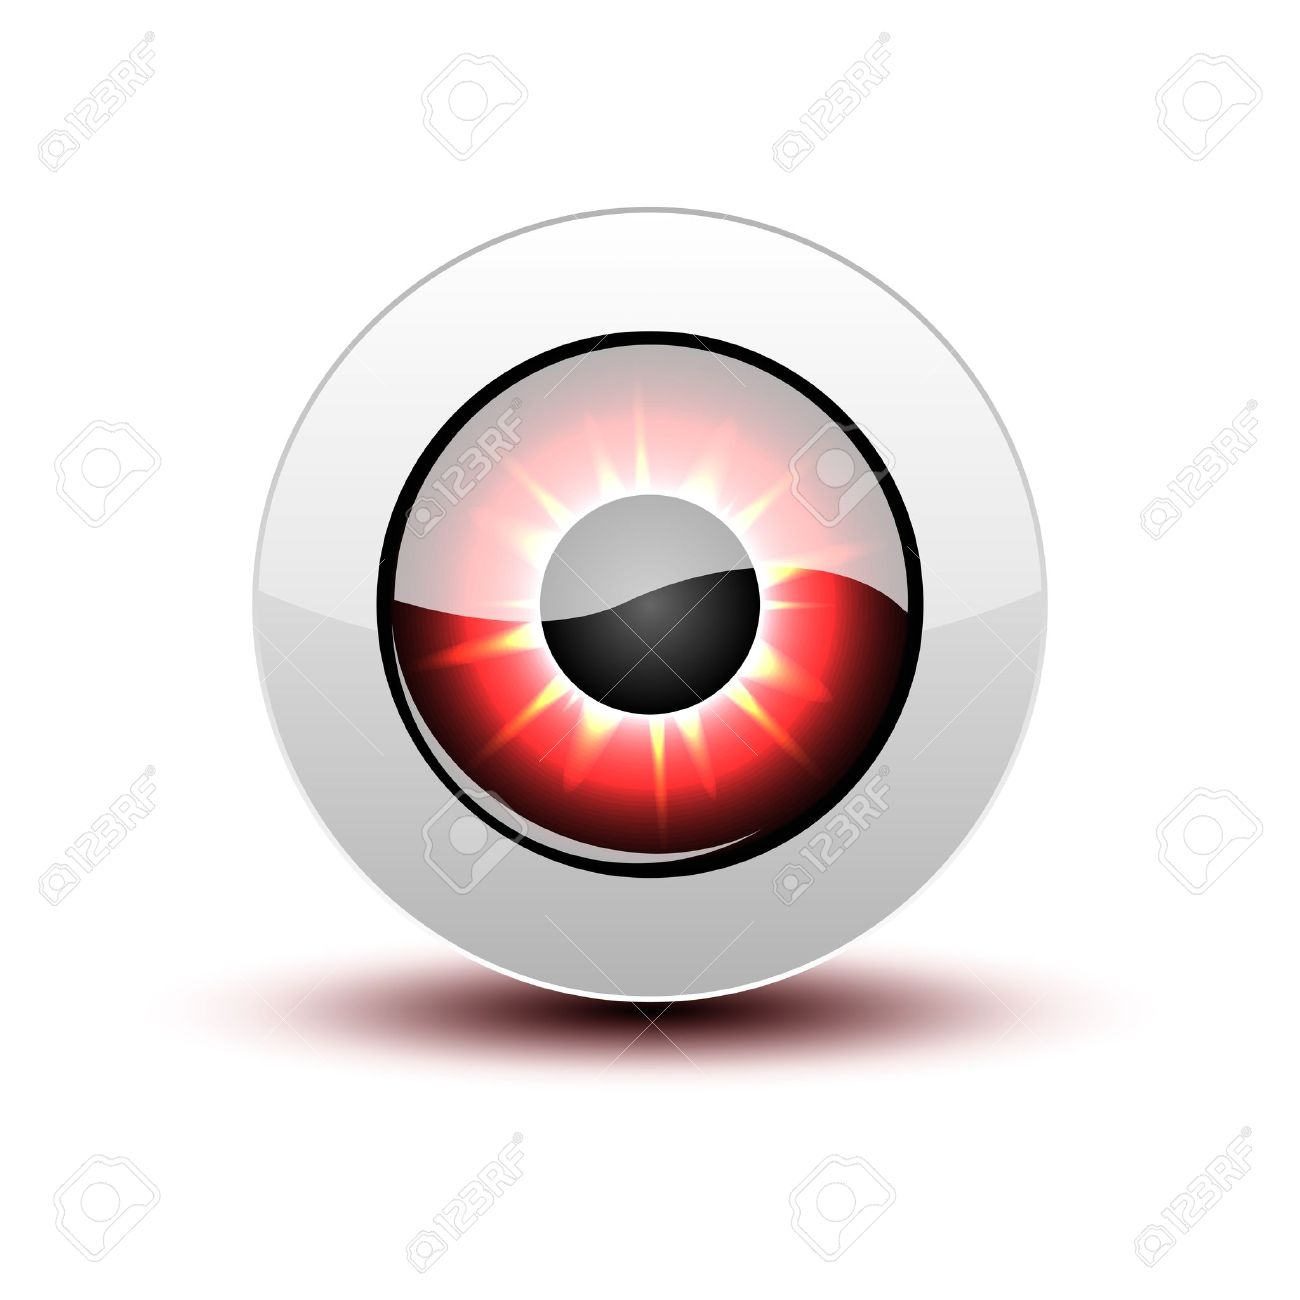 Red eye icon with shadow on white. Stock Vector - 12391710